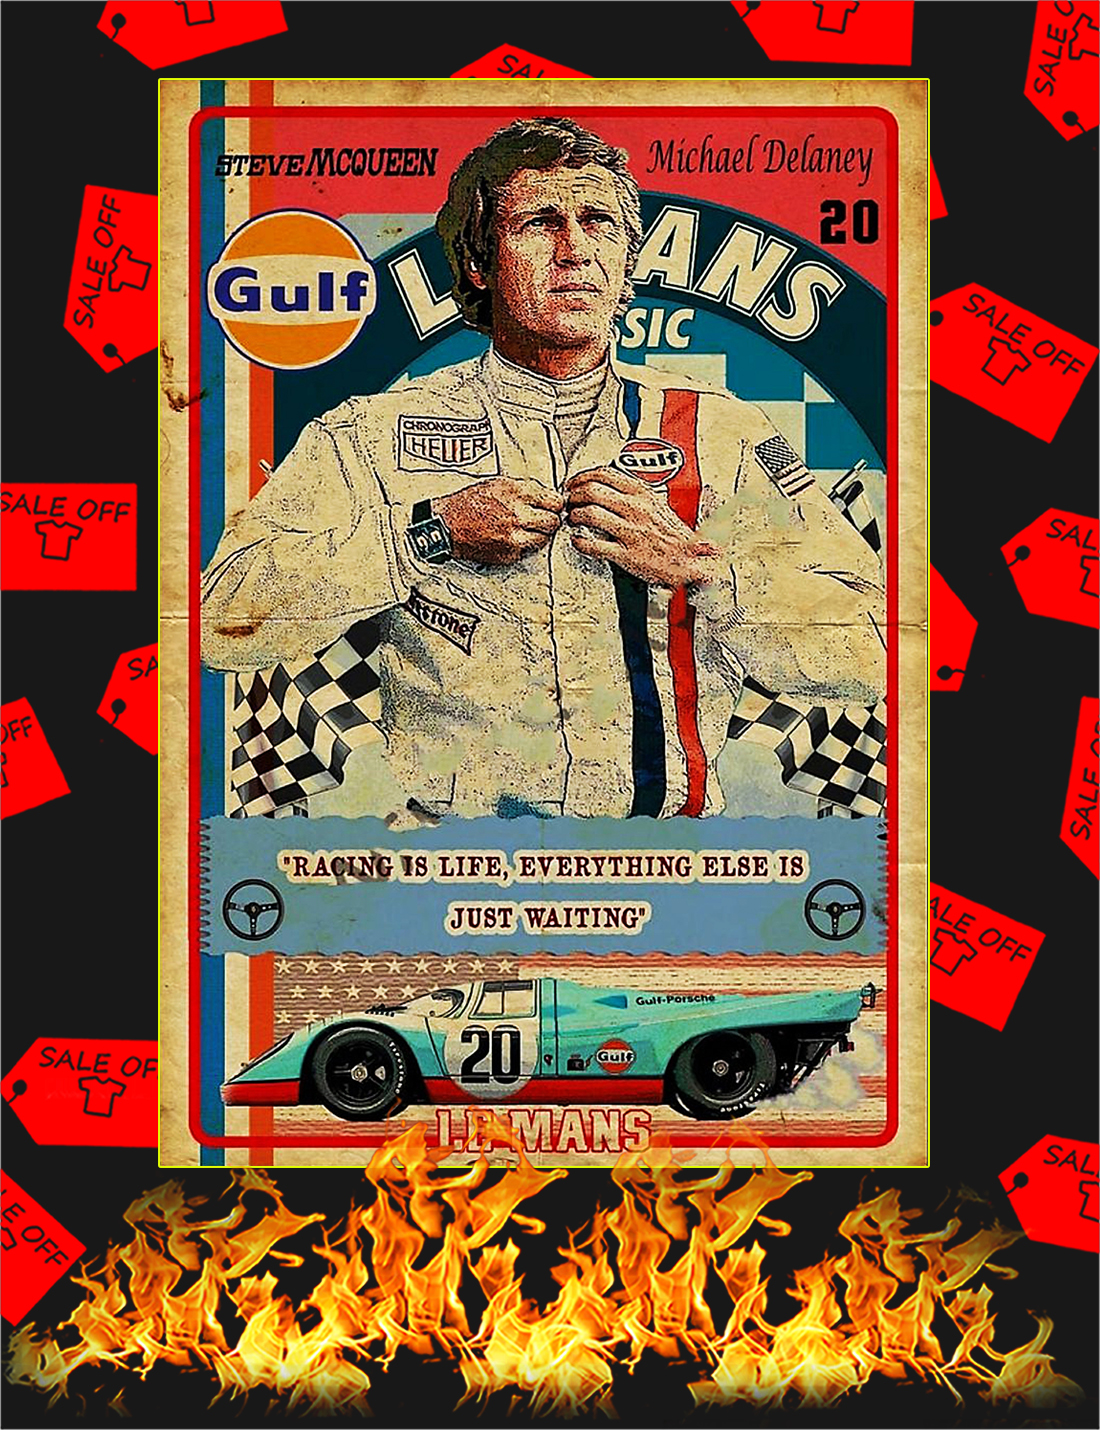 Racing is life everything else is just waiting Steve Mcqueen Poster - A4